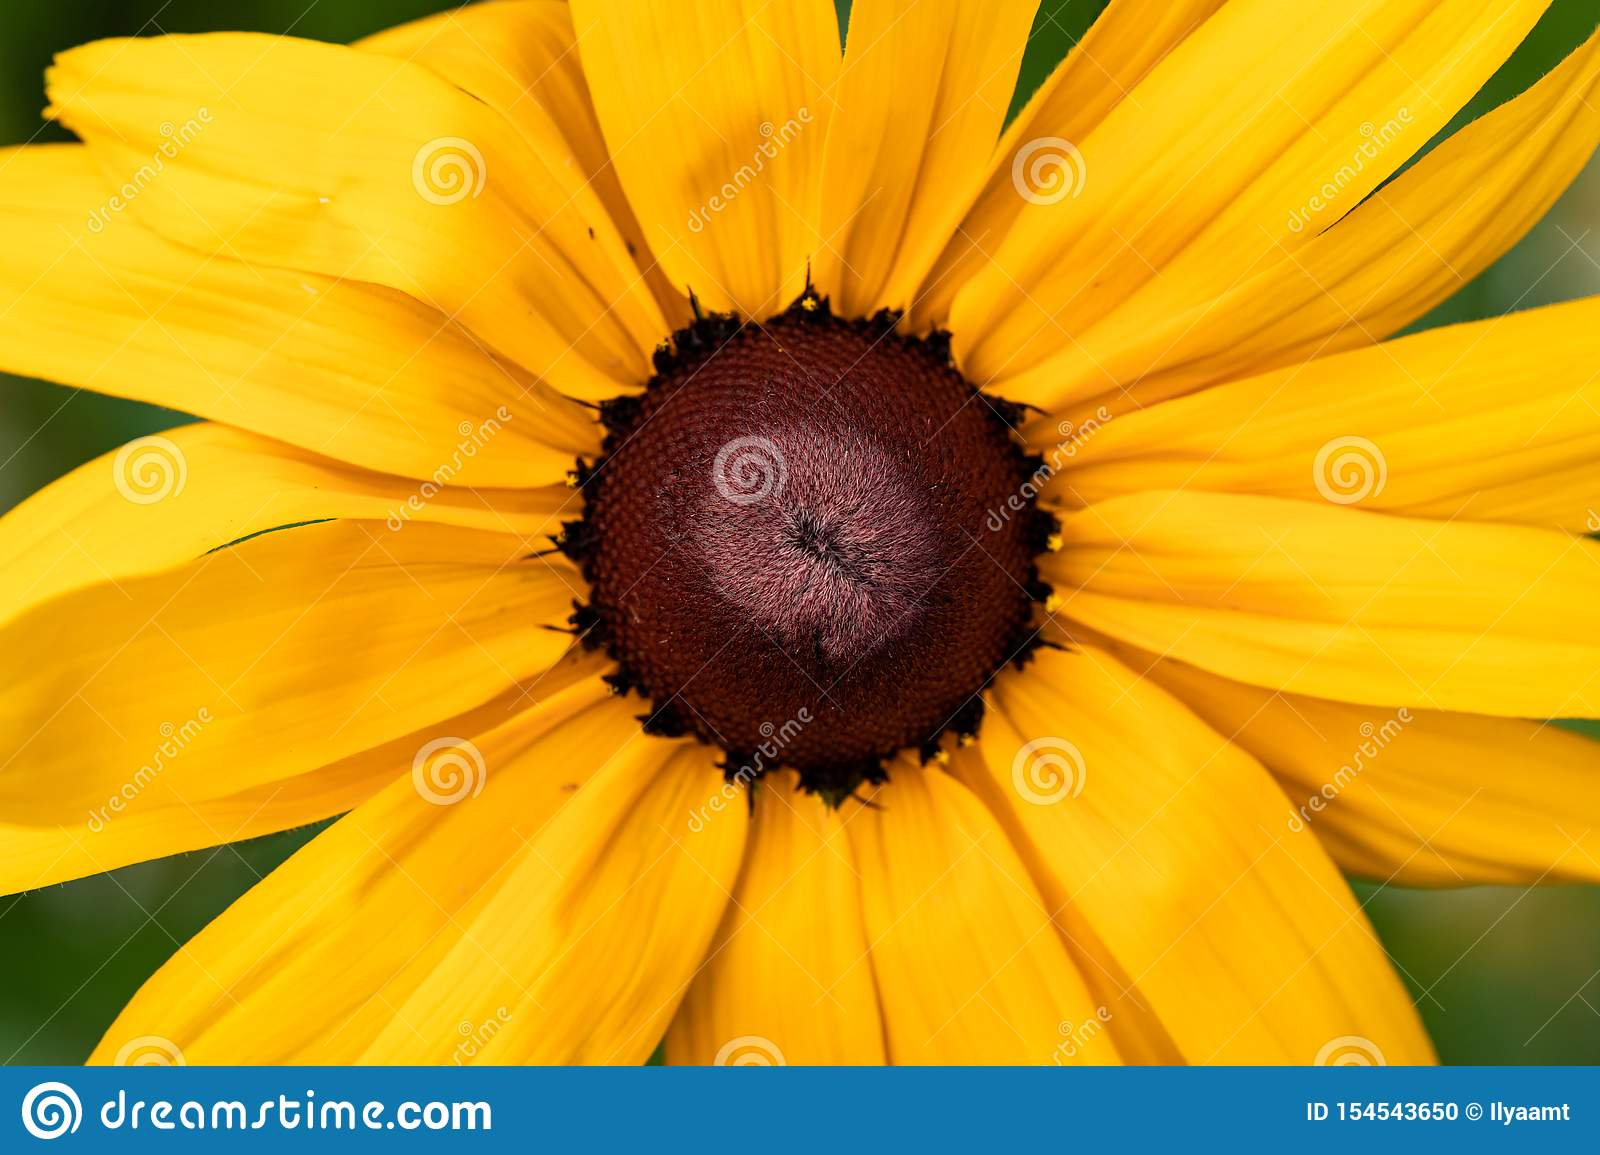 Closeup Of A Yellow Flower On A Blurred Natural Green Background Yellow Flower With A Red Brown Center Like A Daisy Stock Photo Image Of Beautiful Blooming 154543650 Even though alan looks like a puppet, his movements and sounds are chilling, and after a few videos, it's easy to fall down the rabbit hole of daisy brown youtube conspiracy theories. dreamstime com